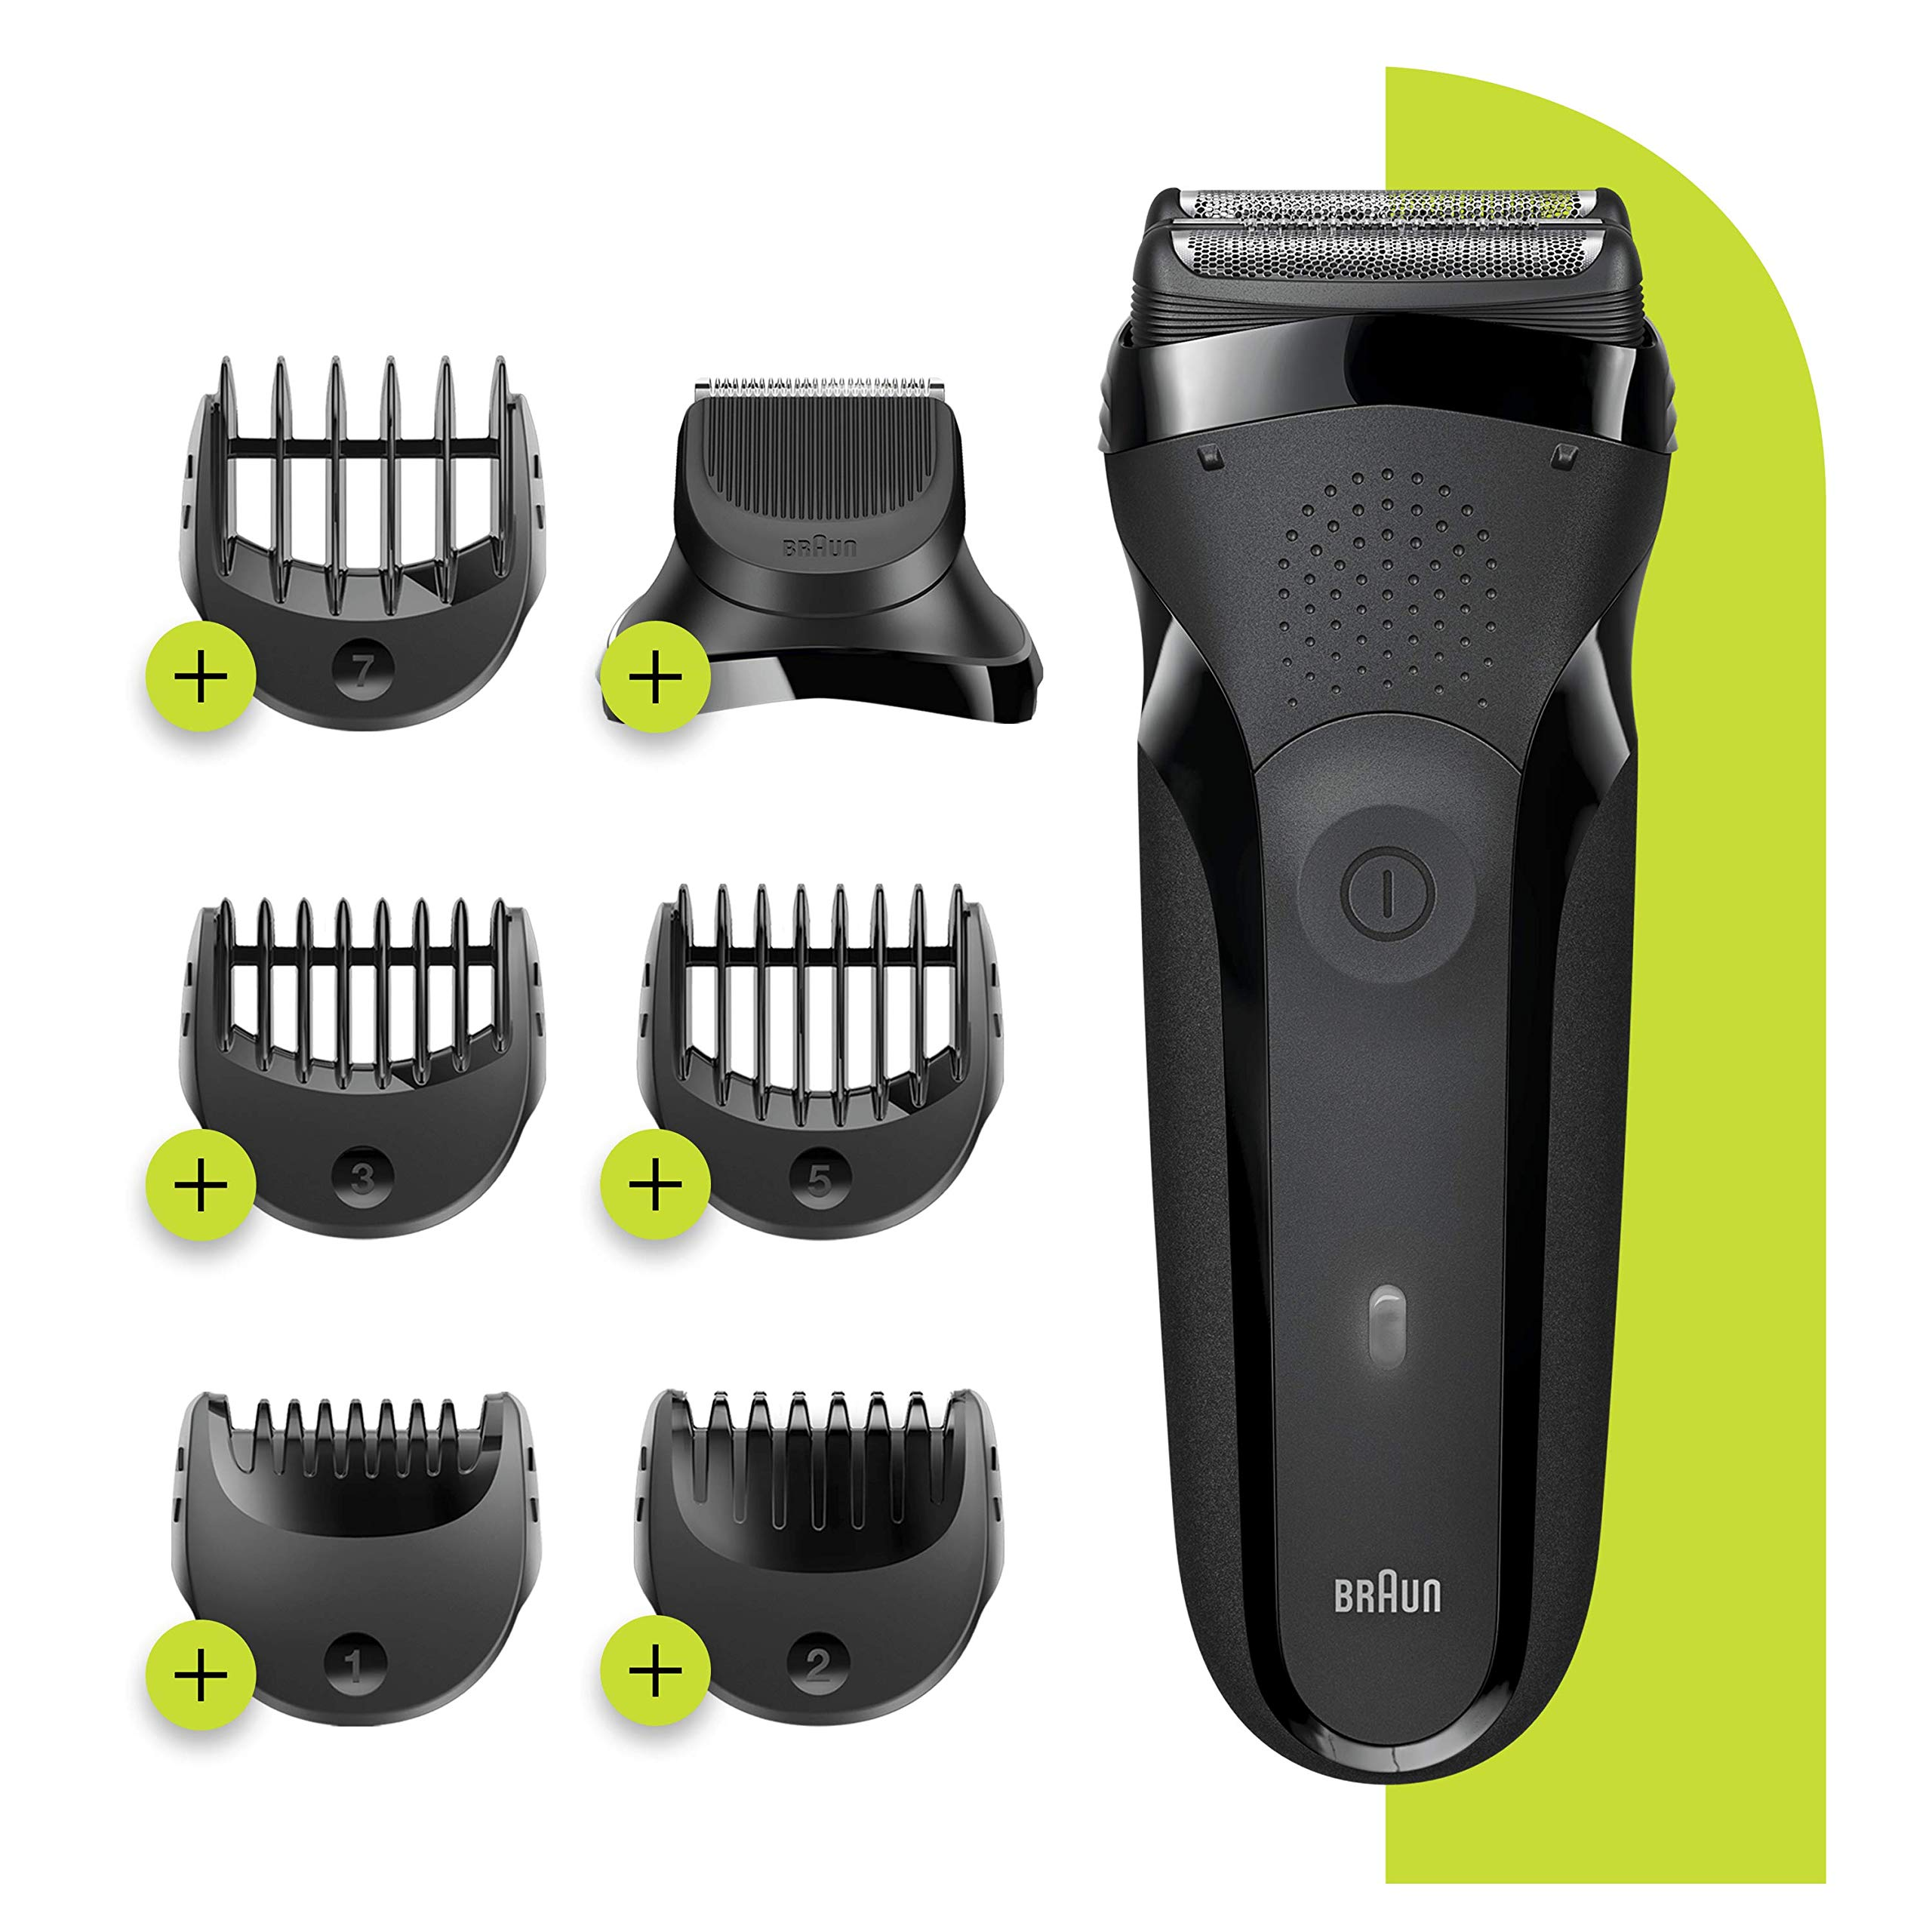 Braun Series 3 Shave&Style 300BT 3-in-1 Electric Shaver, Razor for Men with Precision Beard Trimmer and 5 Combs, Rechargeable and Cordless Shaver, Black